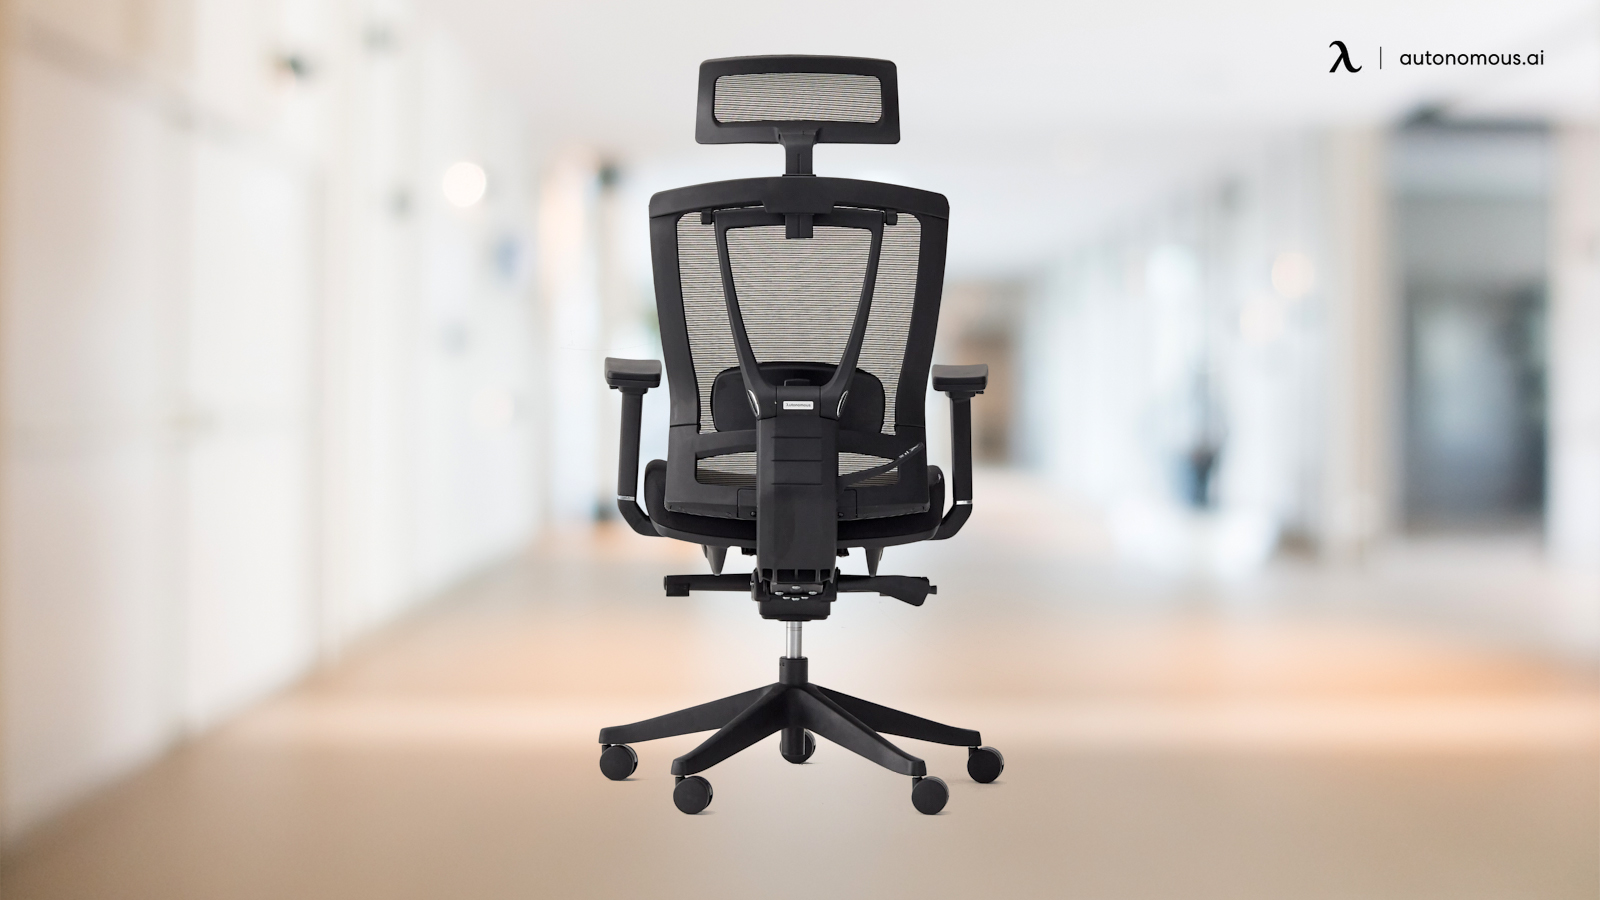 Example of an ergonomic chair